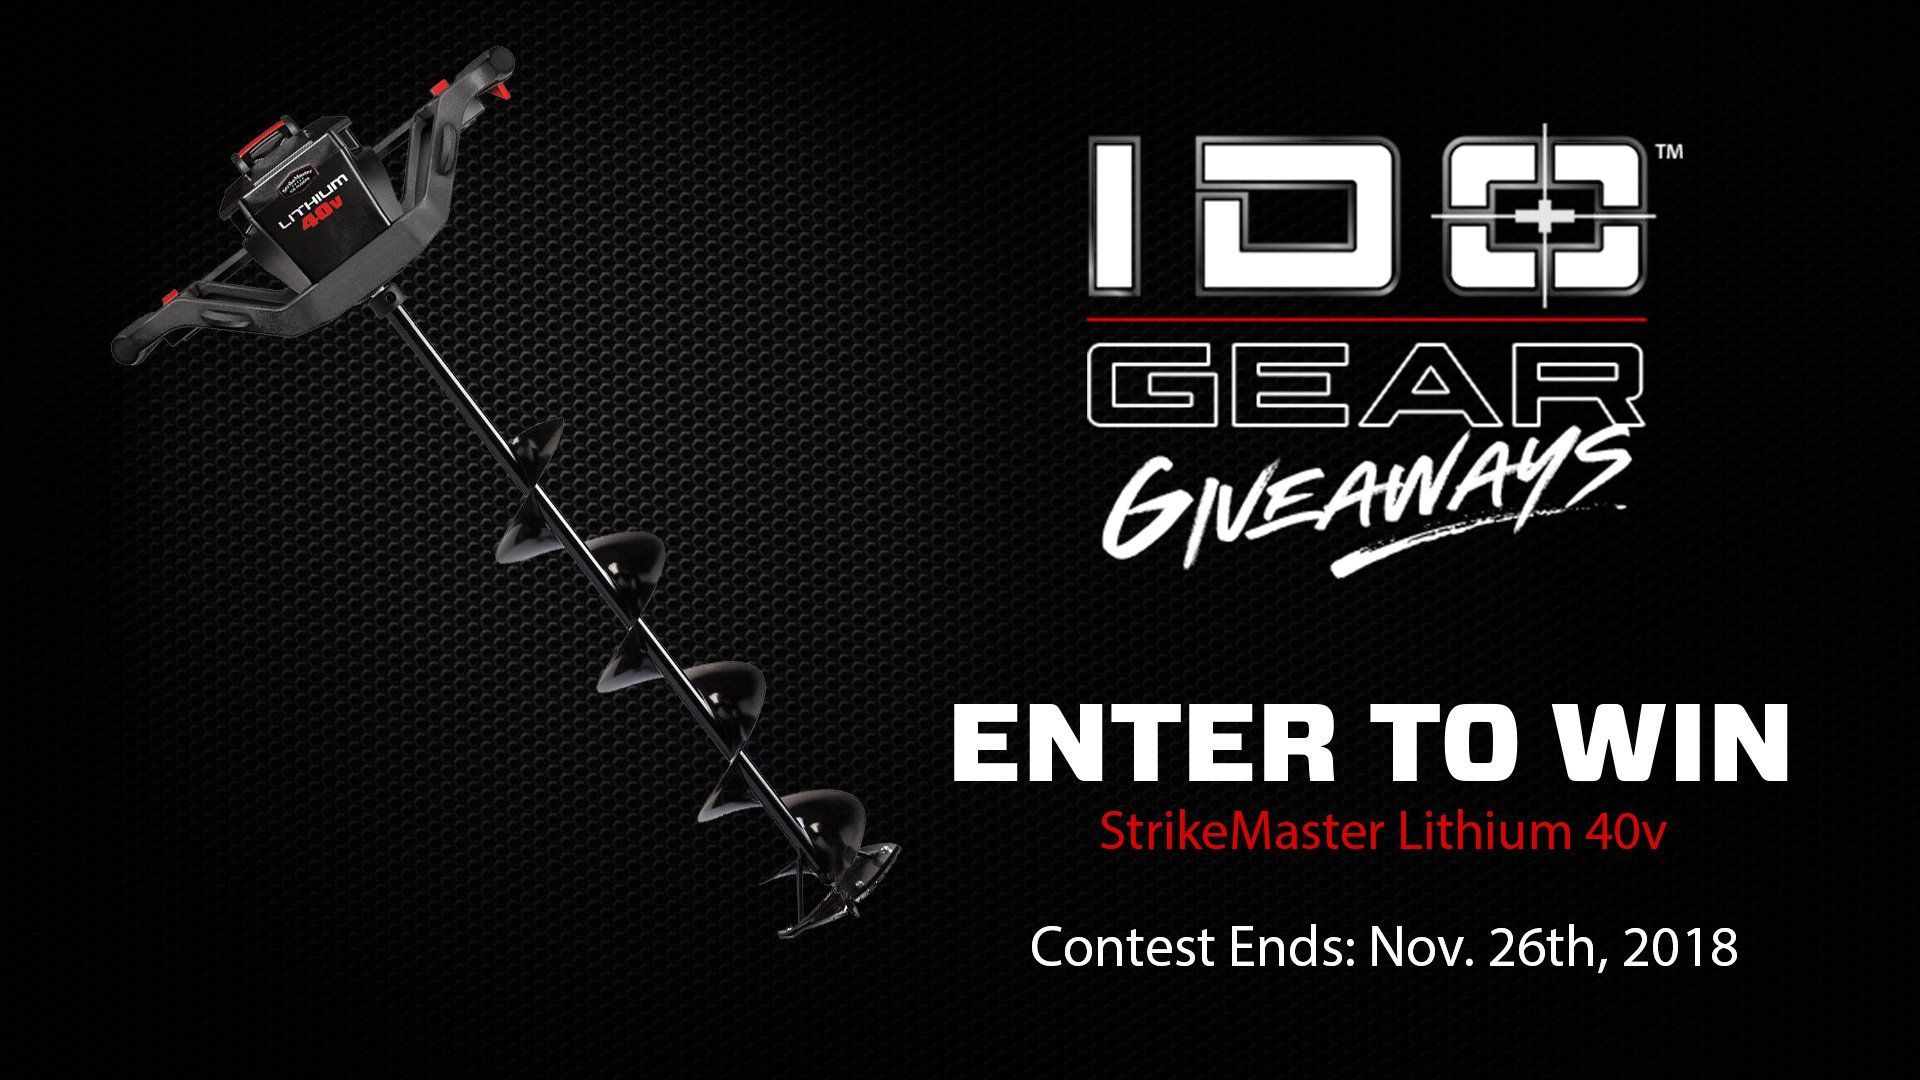 Win a 40v Lithium Electric Ice Auger ($549) – Open to the US